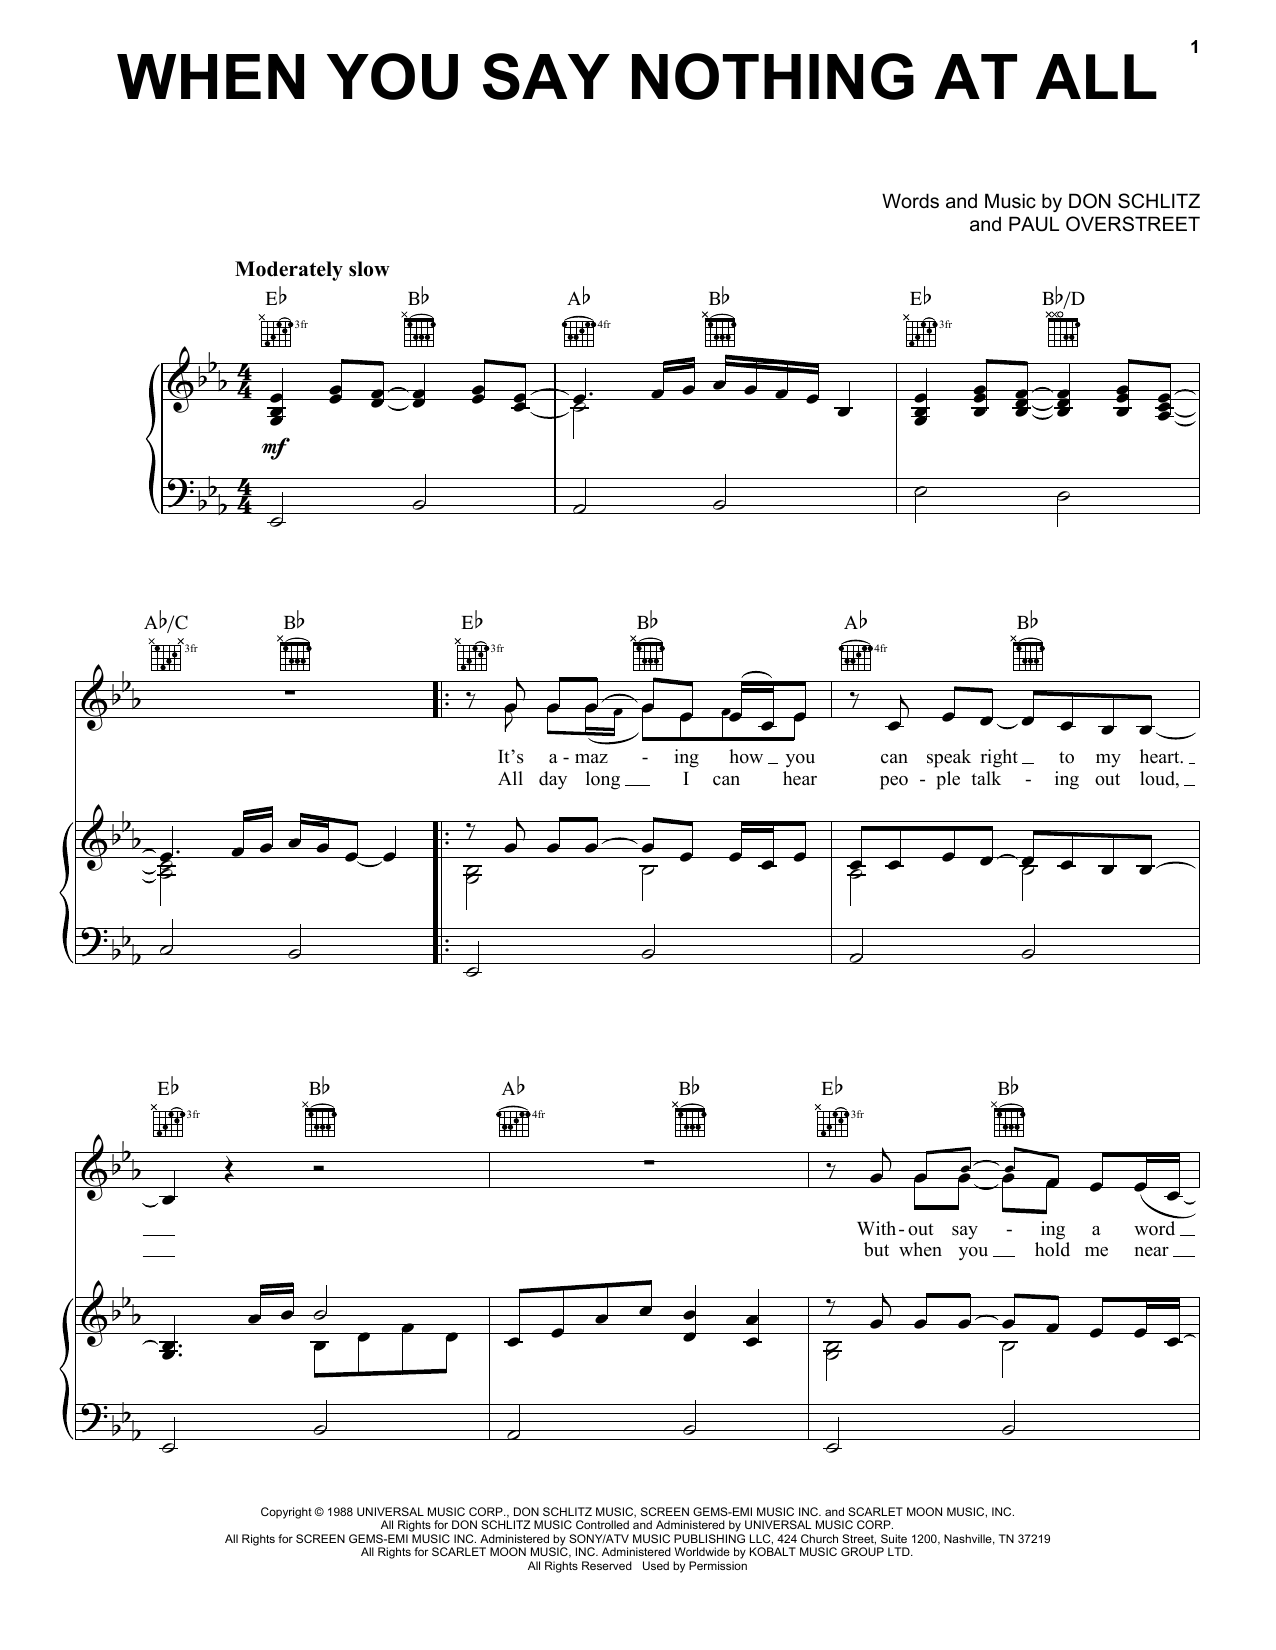 Alison Krauss & Union Station When You Say Nothing At All sheet music notes and chords. Download Printable PDF.